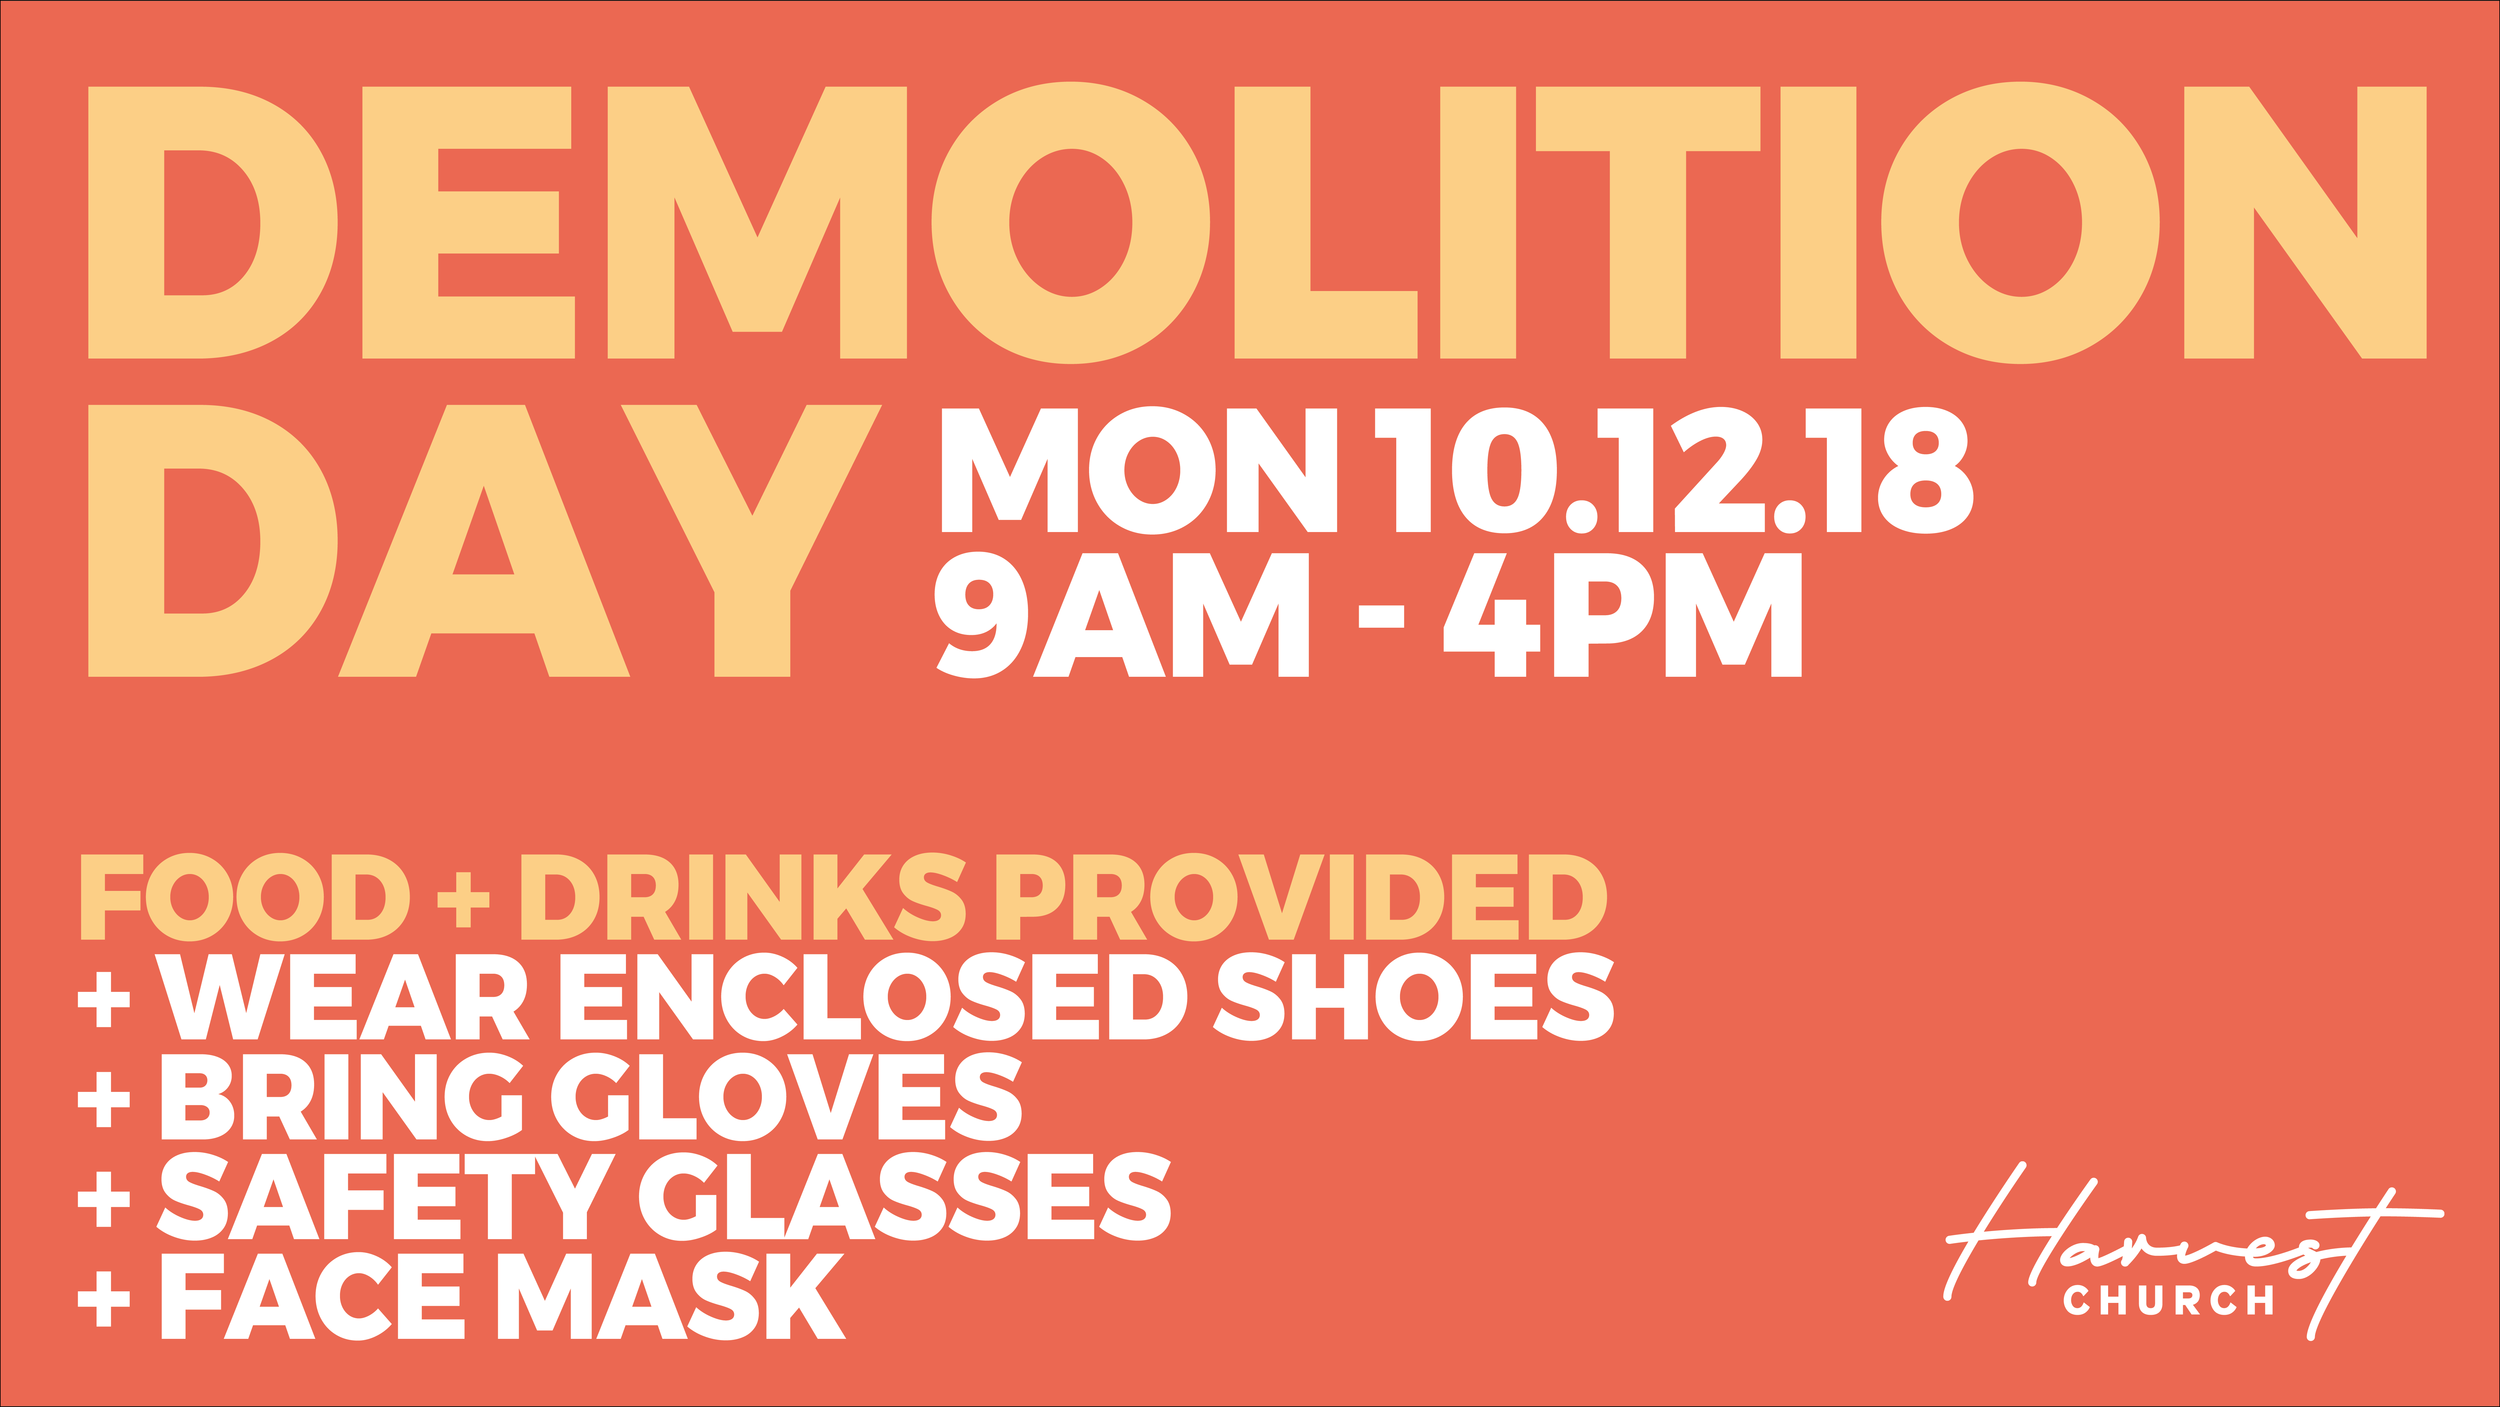 Join us as we demolish our Bathrooms to start renovating them.  Wear enclosed shoes + bring gloves, glasses and face mask Food + Drinks provided